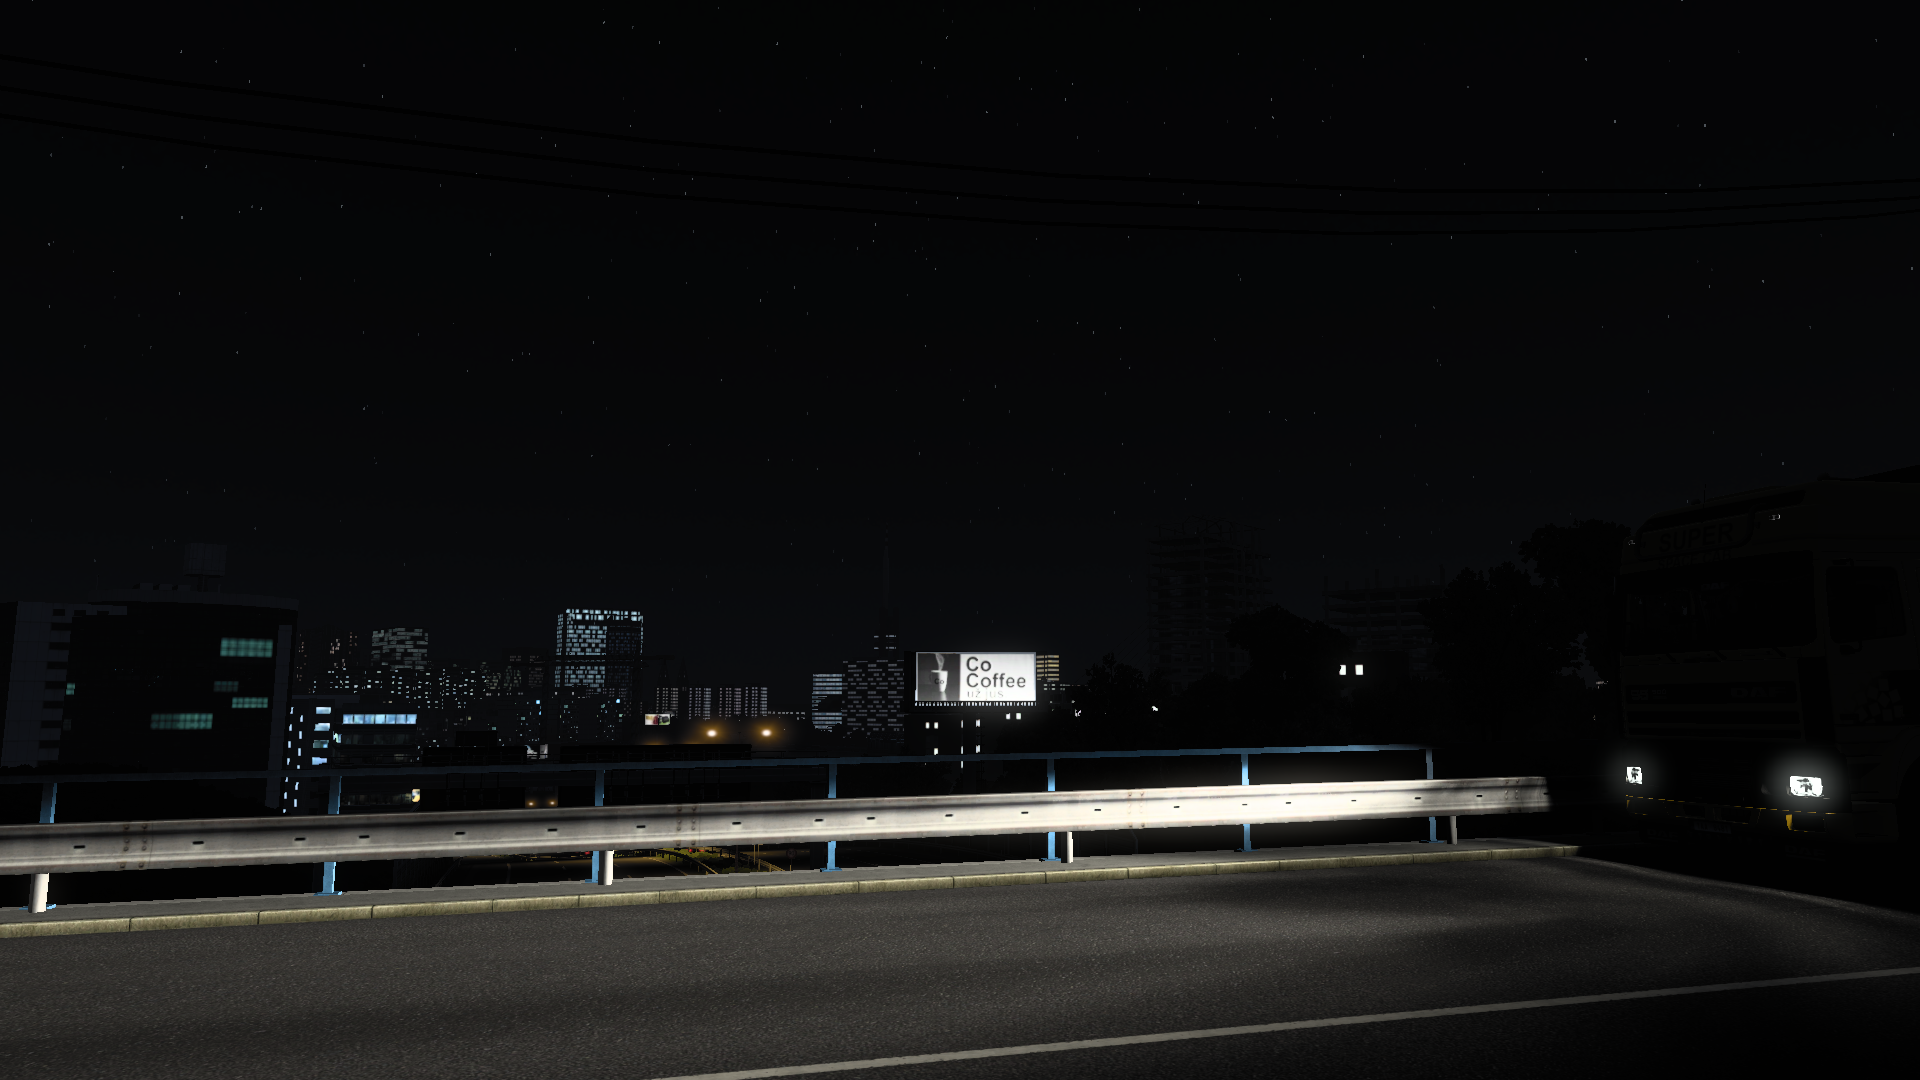 ets2_20210804_194727_00.png